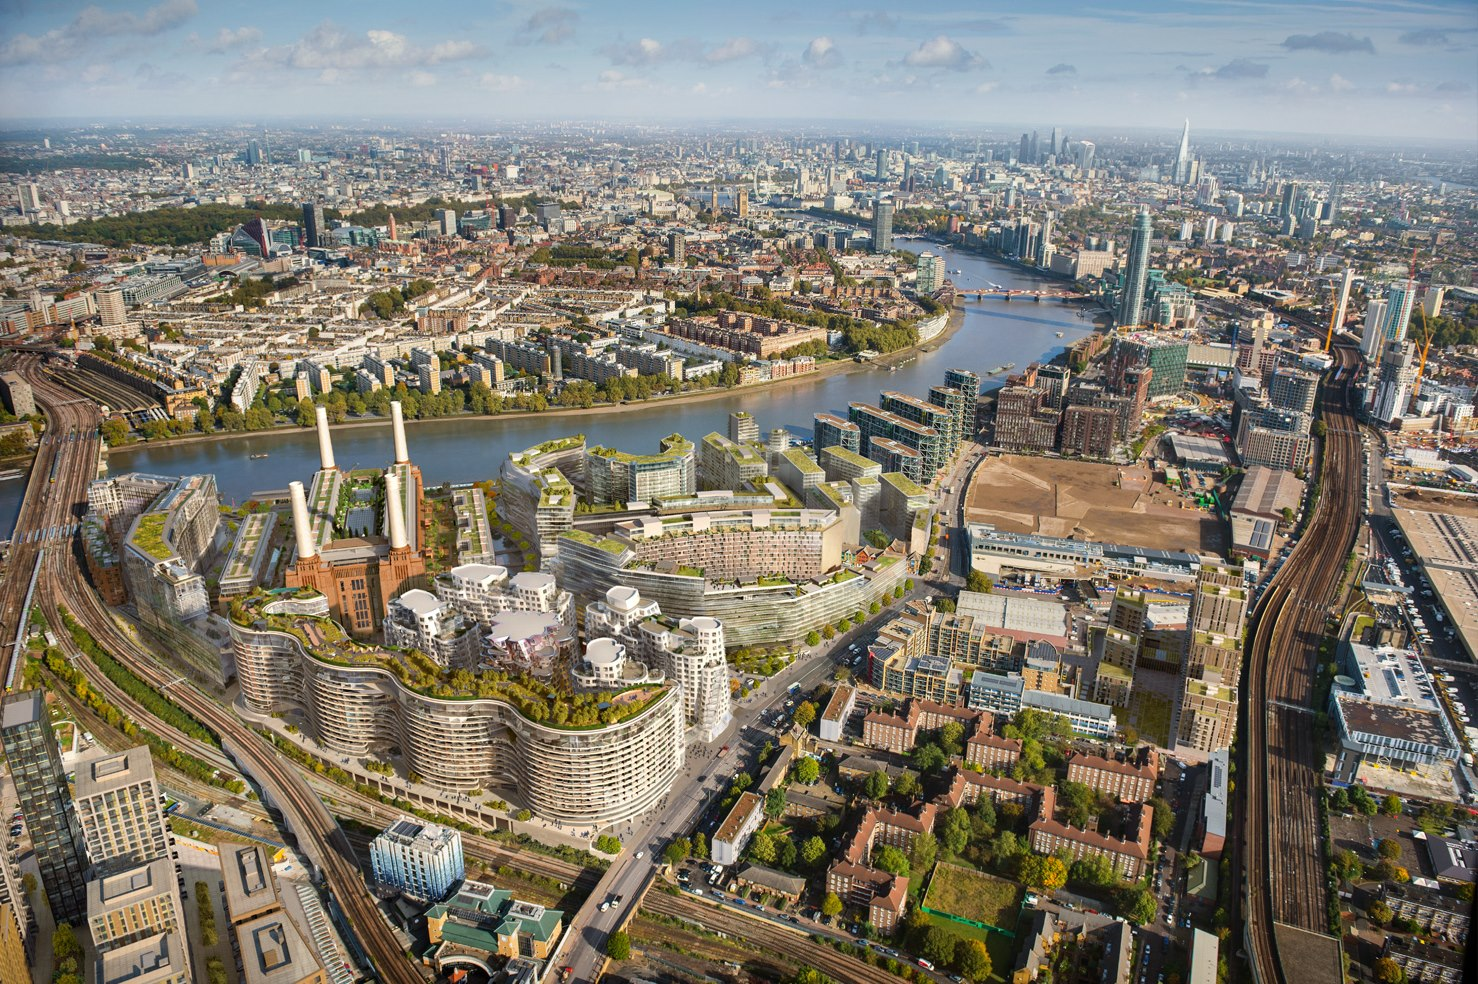 battersea power station,nine elms,Aerial